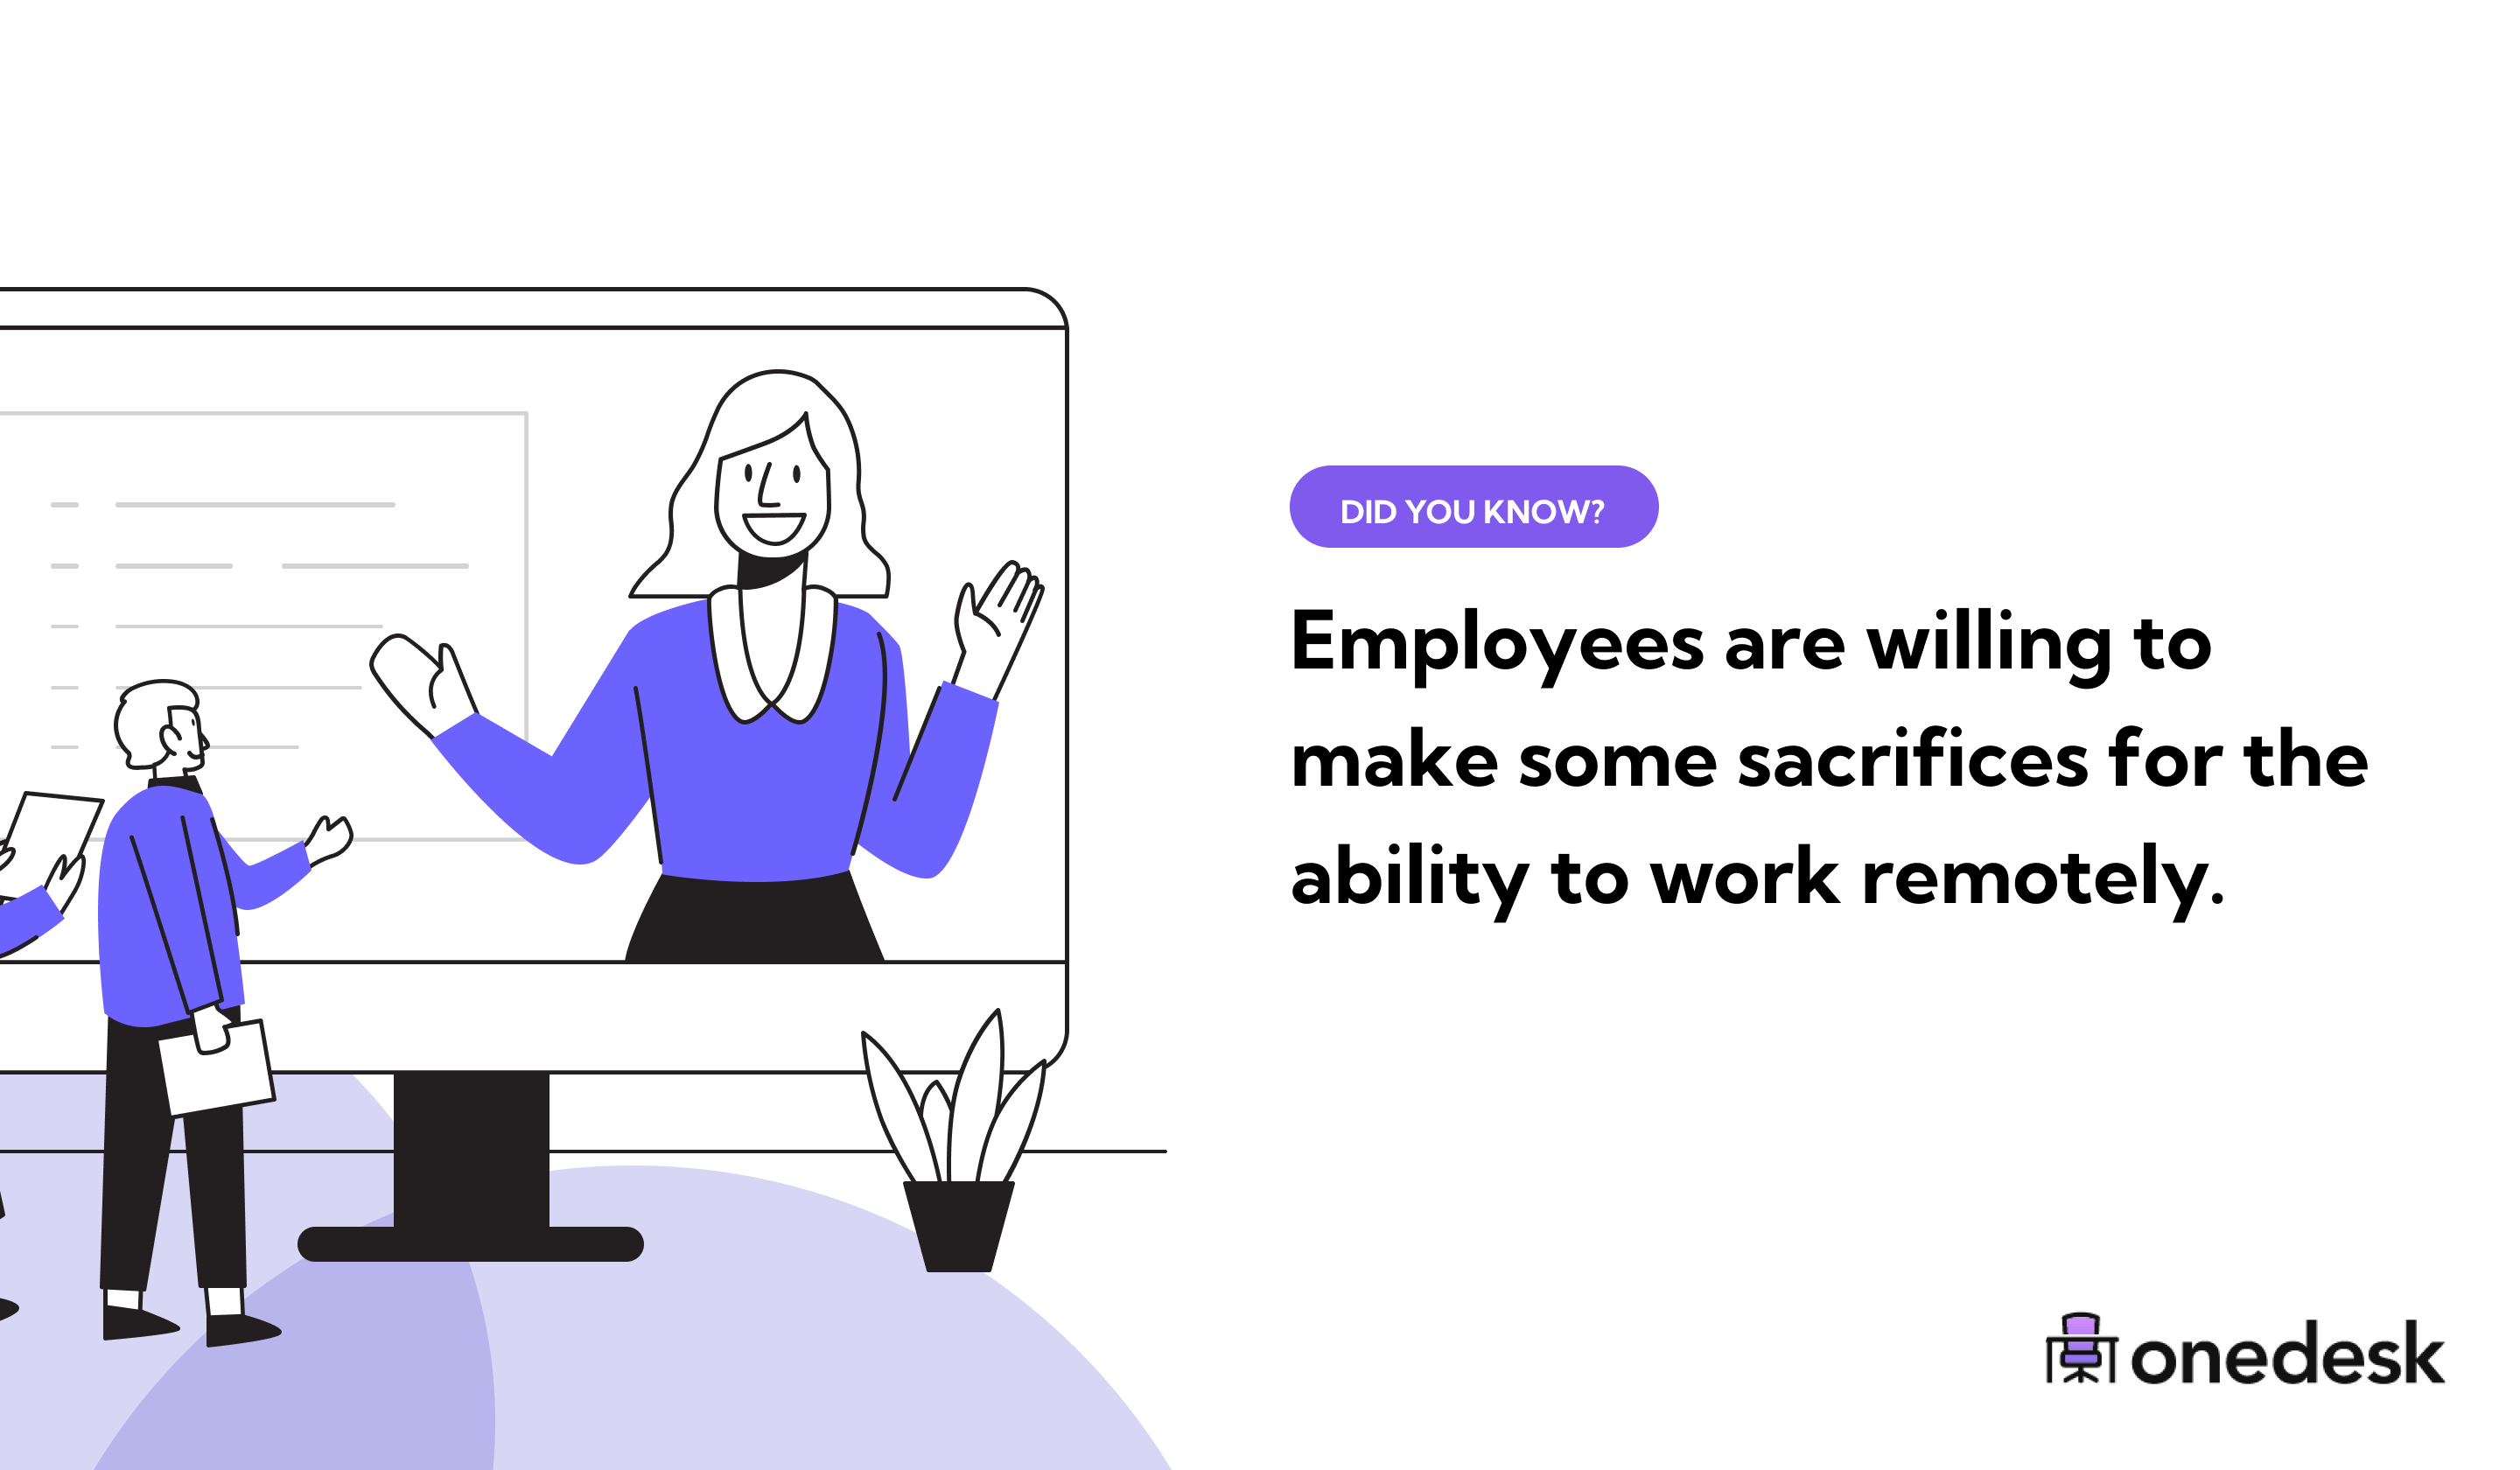 employees are willing to make sacrifices for the ability to work remotely